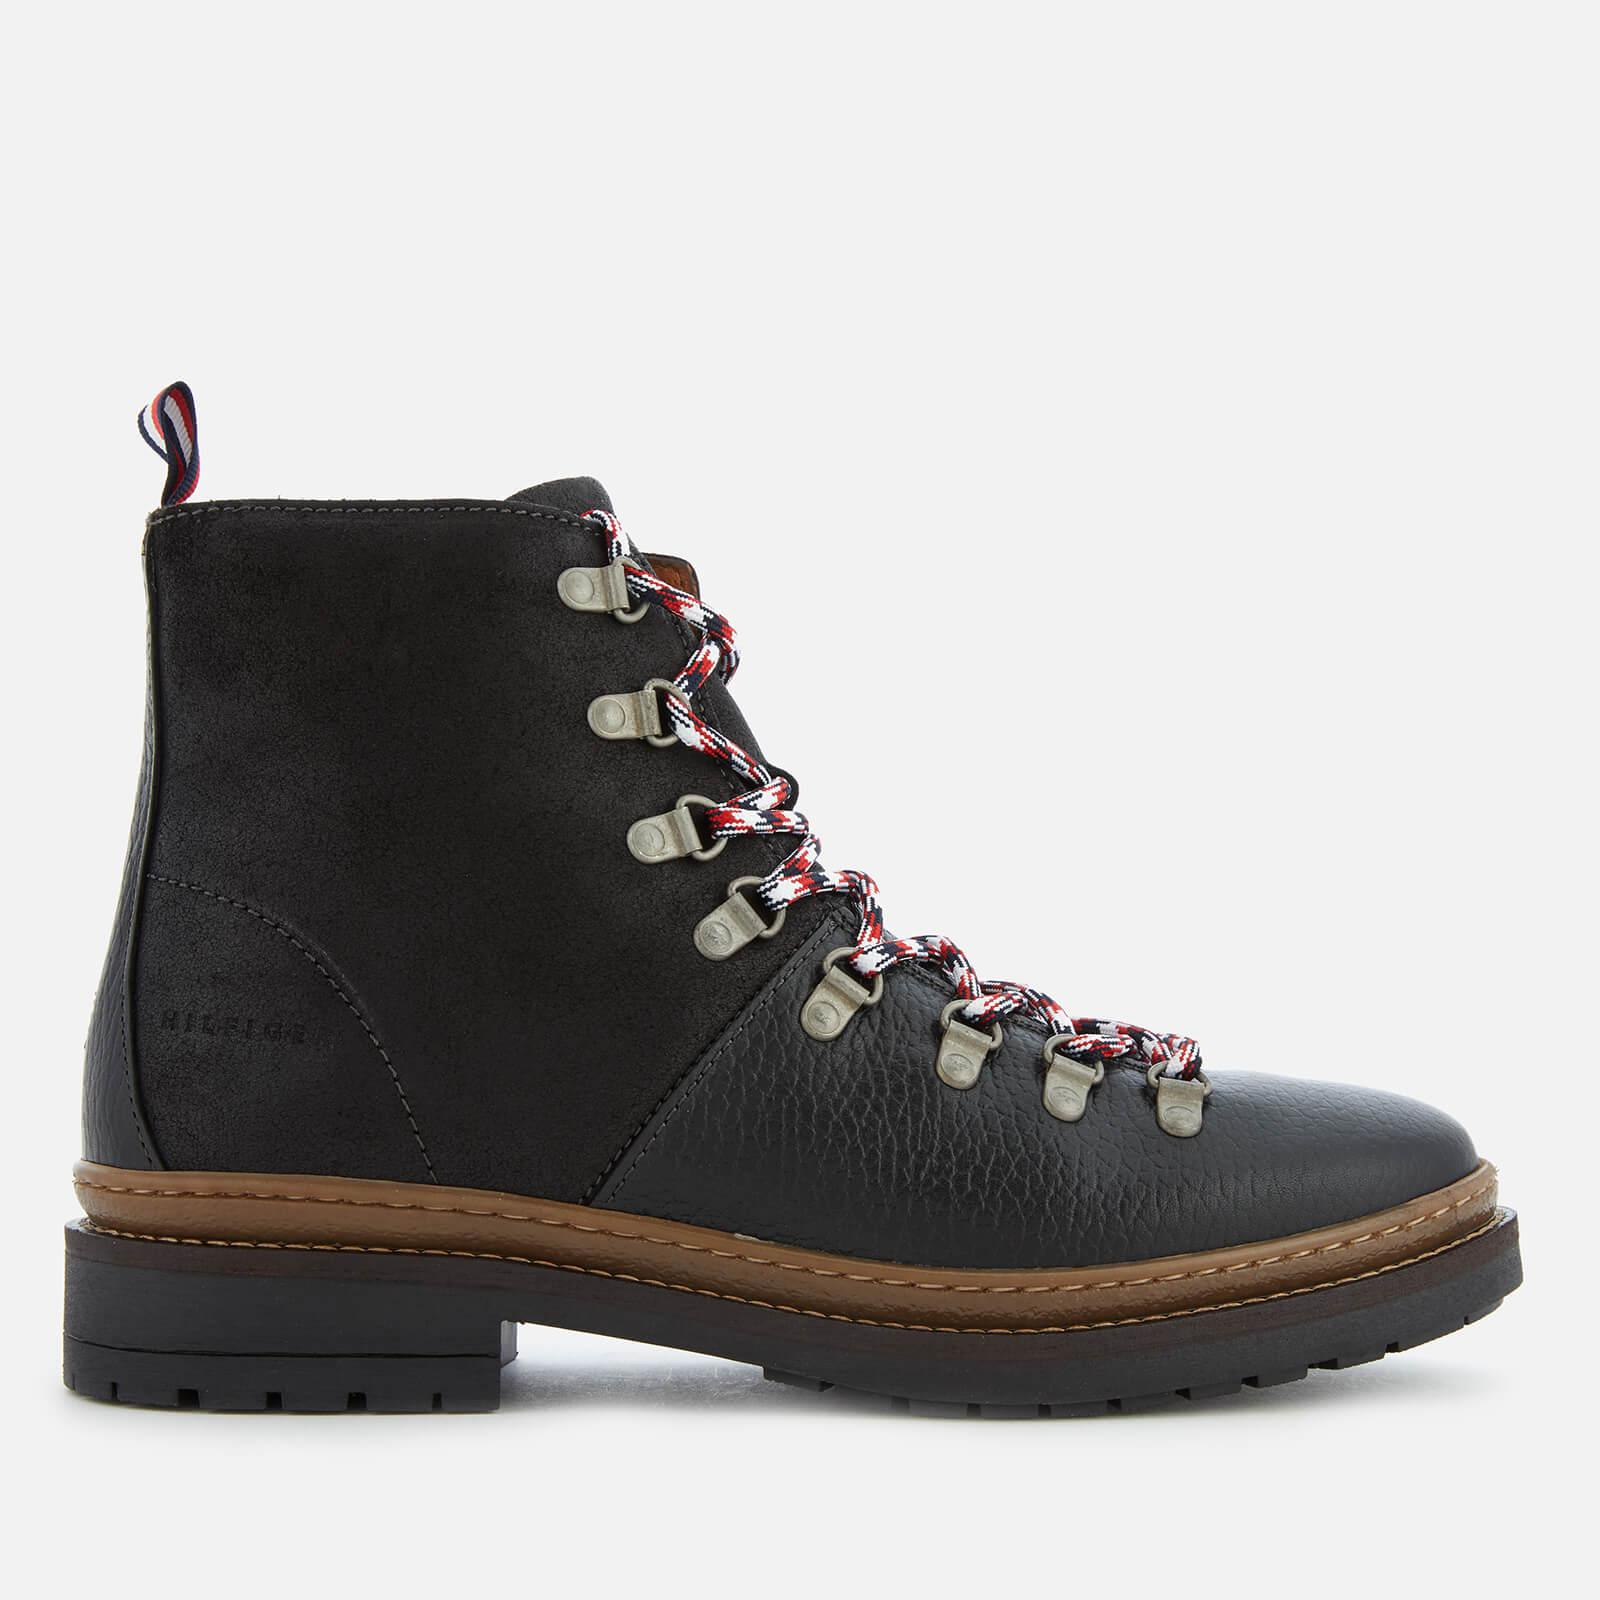 7ce901800f8df Tommy Hilfiger Elevated Outdoor Leather Hiking Boots in Black for ...